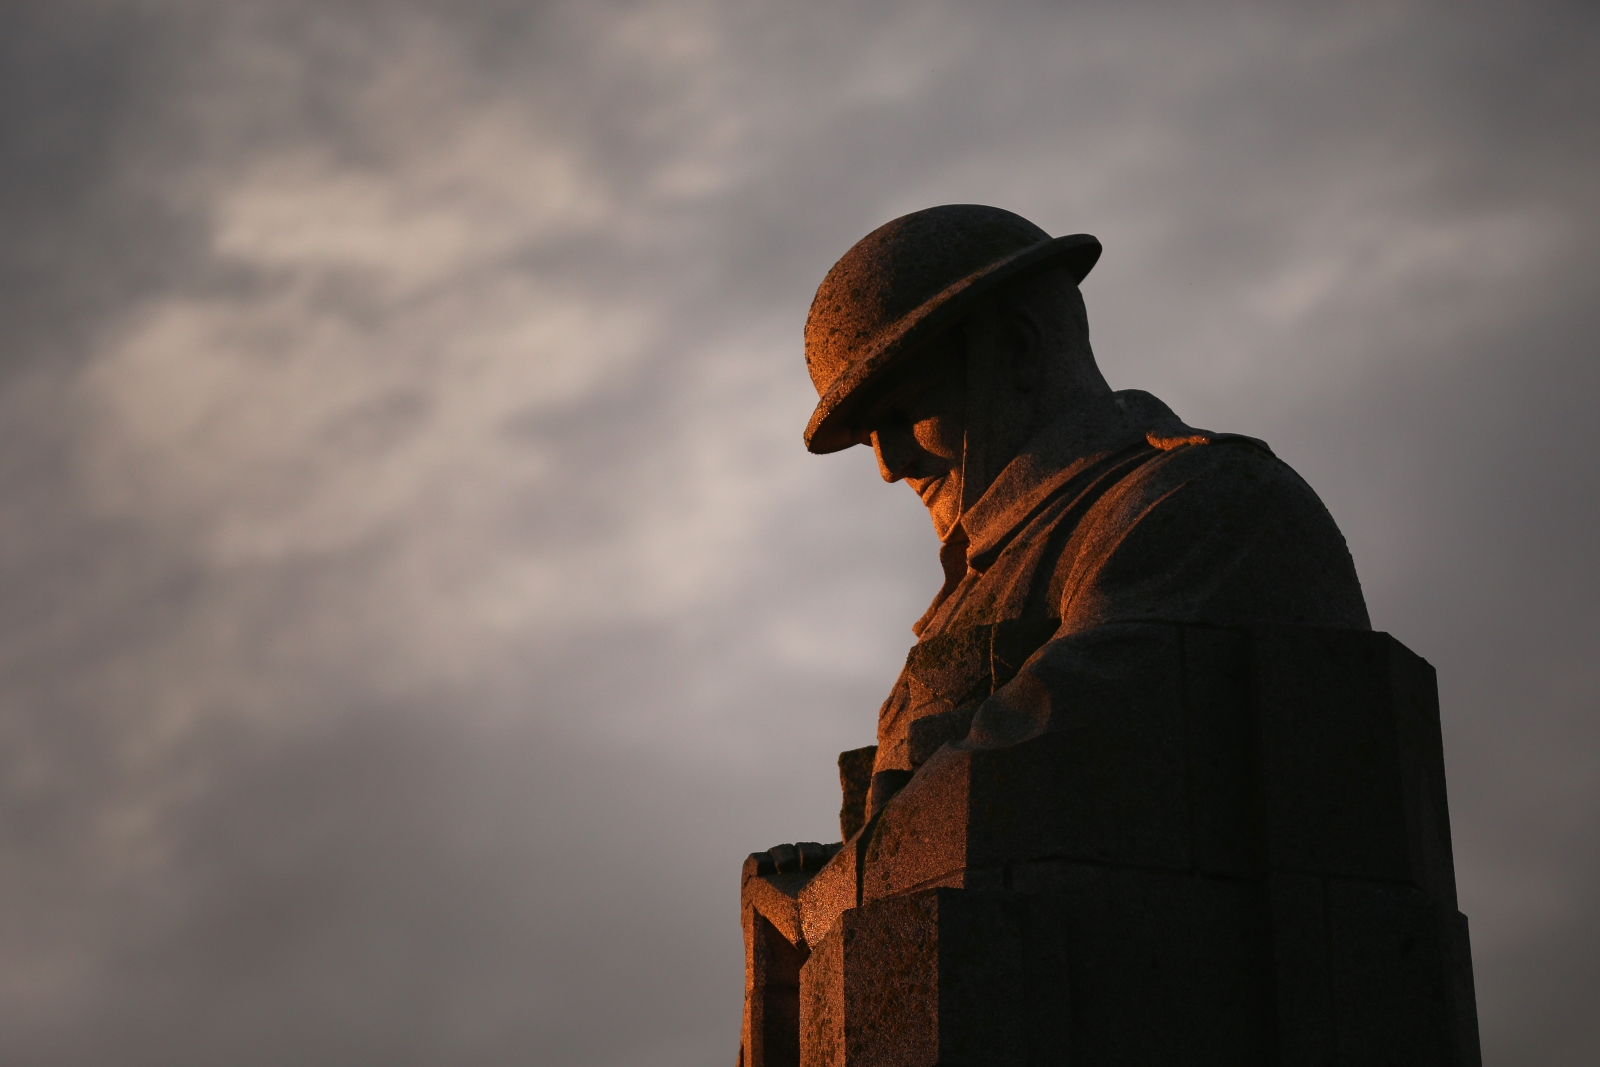 WWI Anniversary: Flanders Memorials of the 'Glorious Dead'